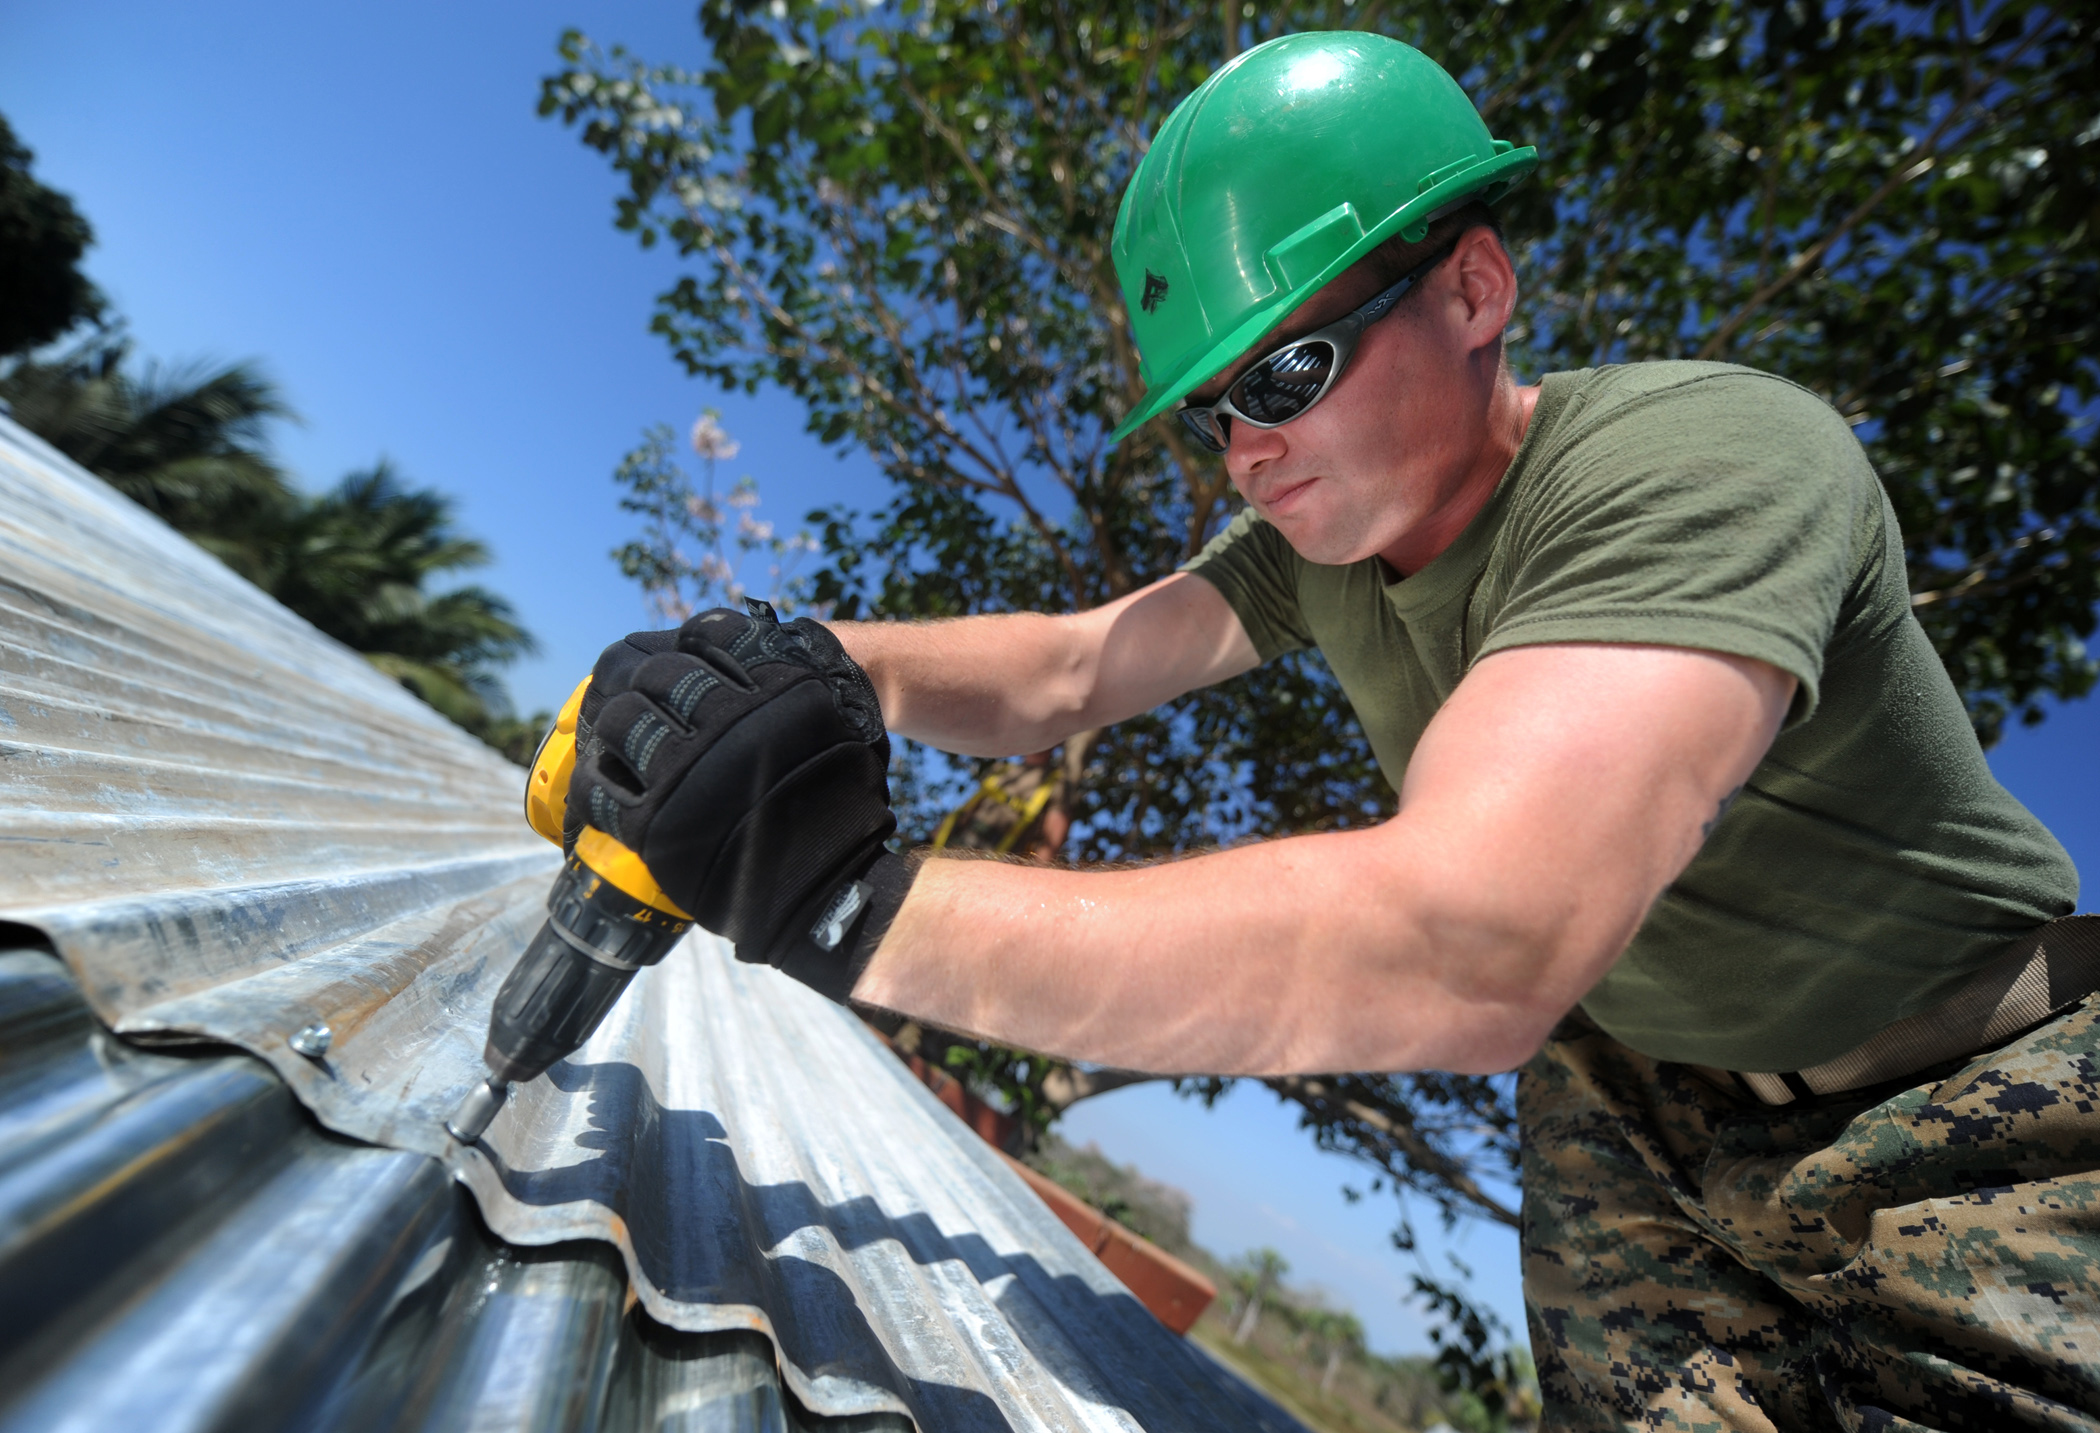 110131-N-2984R-220 U.S. Marine Corps Lance Cpl. Stephen S. Mcdonaldhale, assigned to the 2nd Marine Logistics Group, repairs the roof of a classroom at Escuela Santa Marta in San Jose, Guatemala, during a week-long project in support of Southern Partnership Station 2011 on Jan. 31, 2011. Southern Partnership Station is an annual deployment of U.S. ships to the U.S. Southern Command area of responsibility in the Caribbean and Latin America involving information sharing with navies, coast guards and civilian services throughout the region. DoD photo by Petty Officer 2nd Class Ricardo J. Reyes, U.S. Navy. (Released)